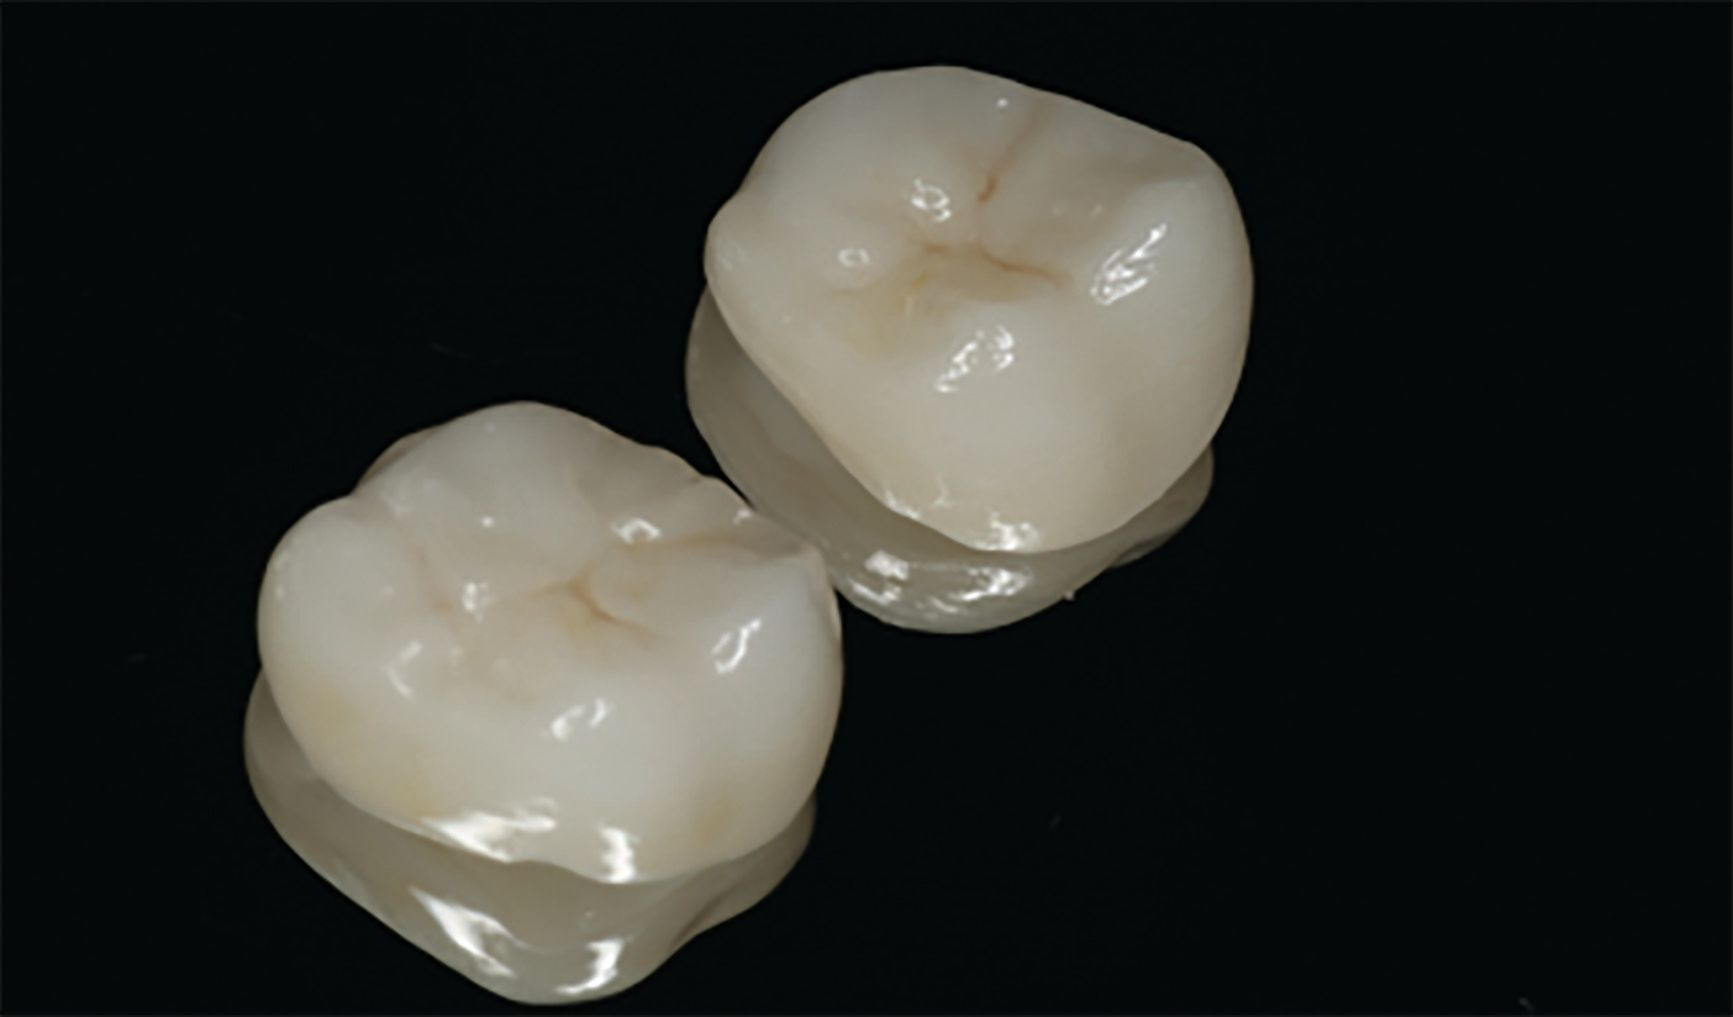 Catapult dental product review